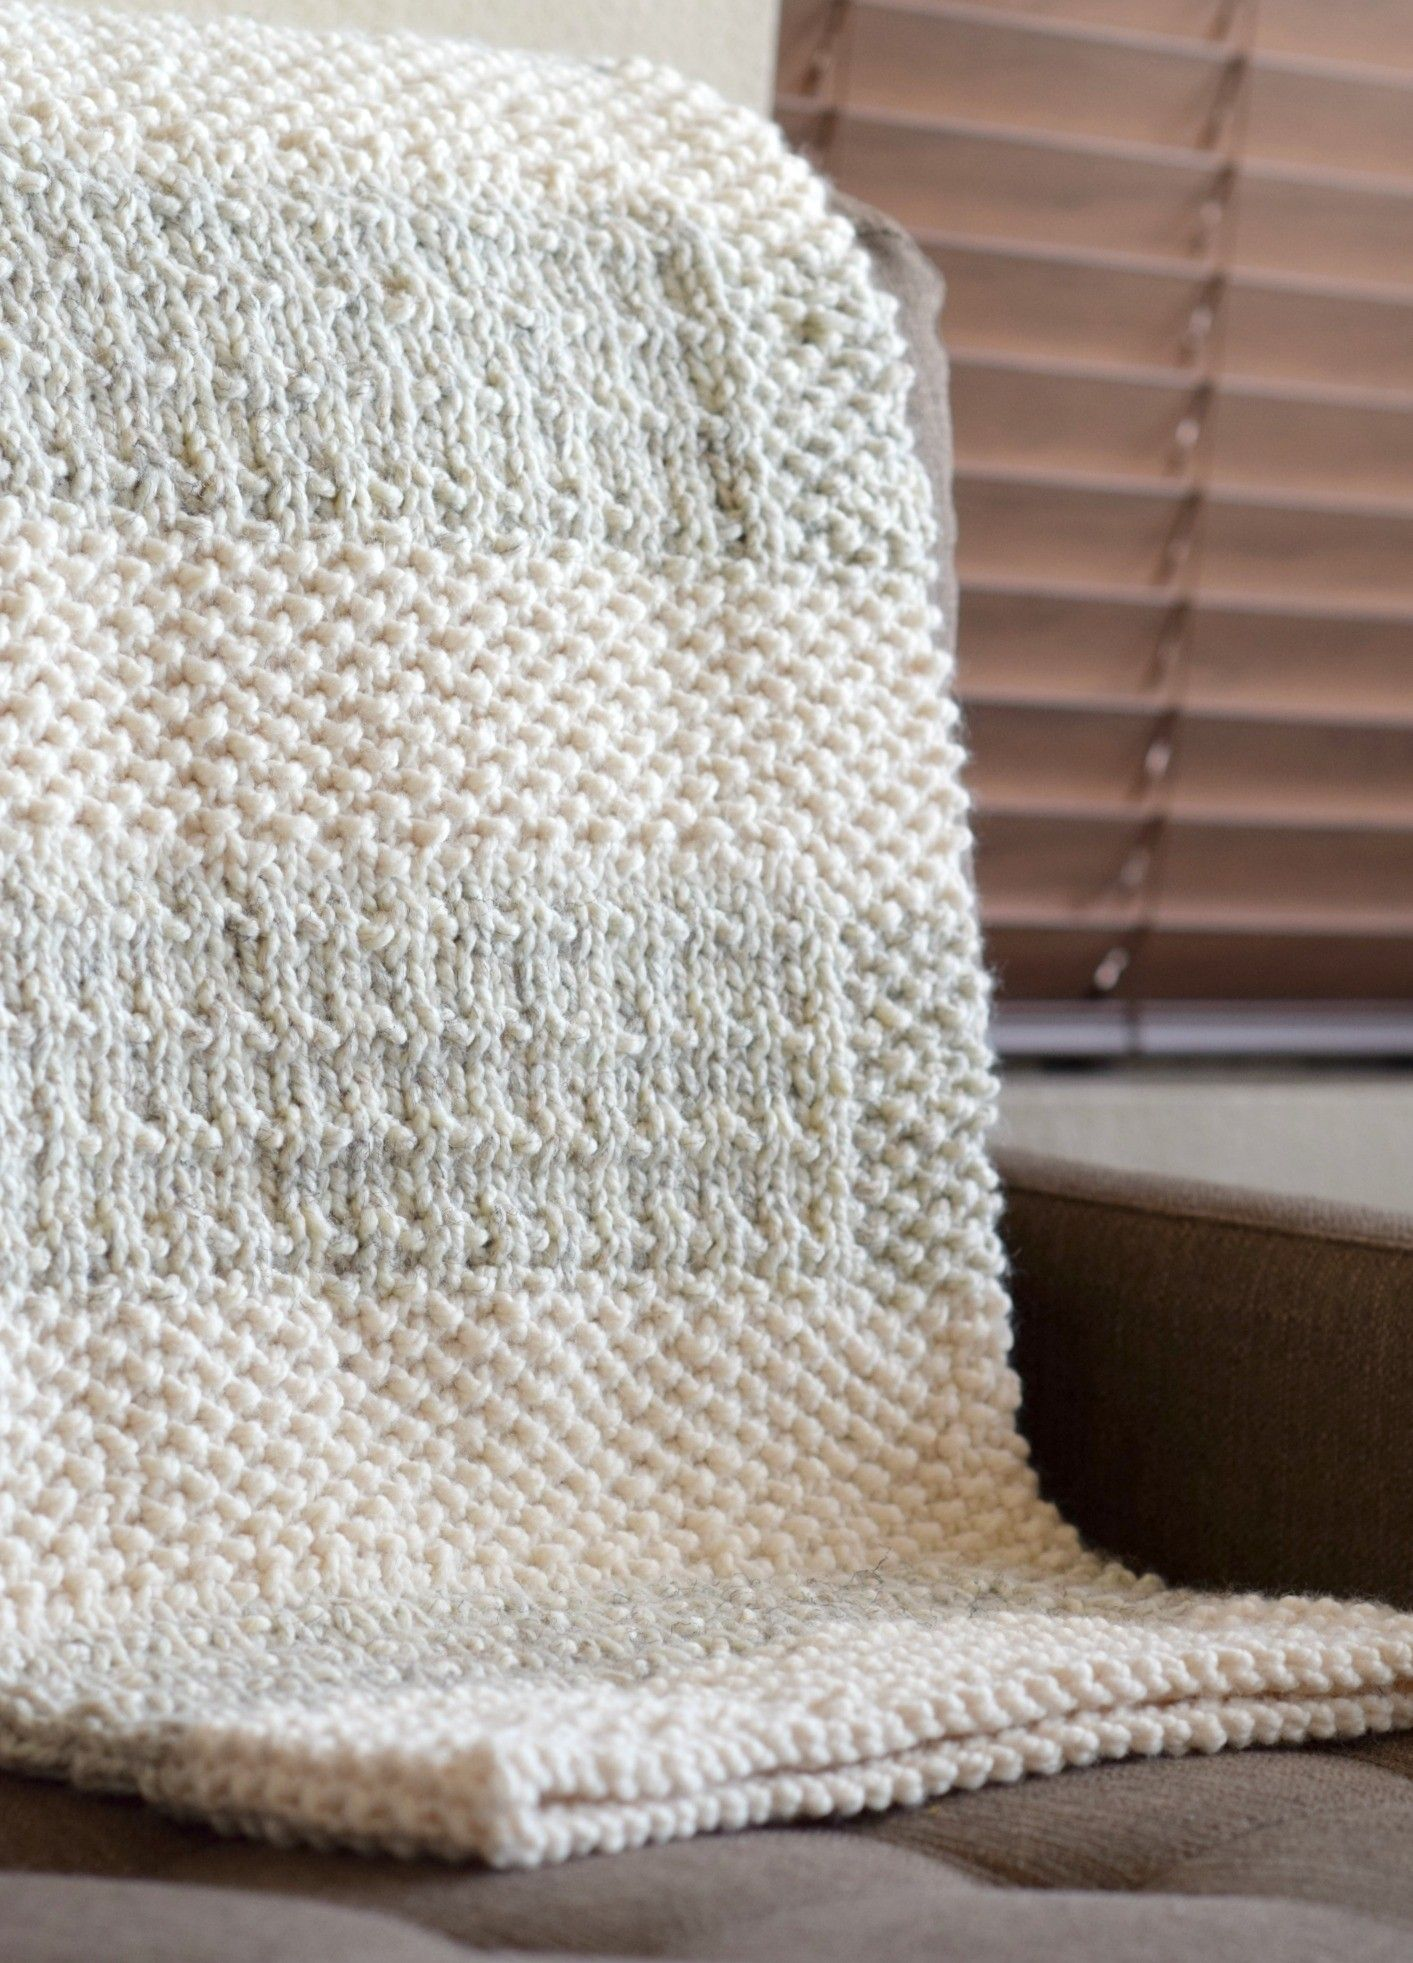 Knit Kit - Easy Heirloom Knit Blanket | Cobija y Hola